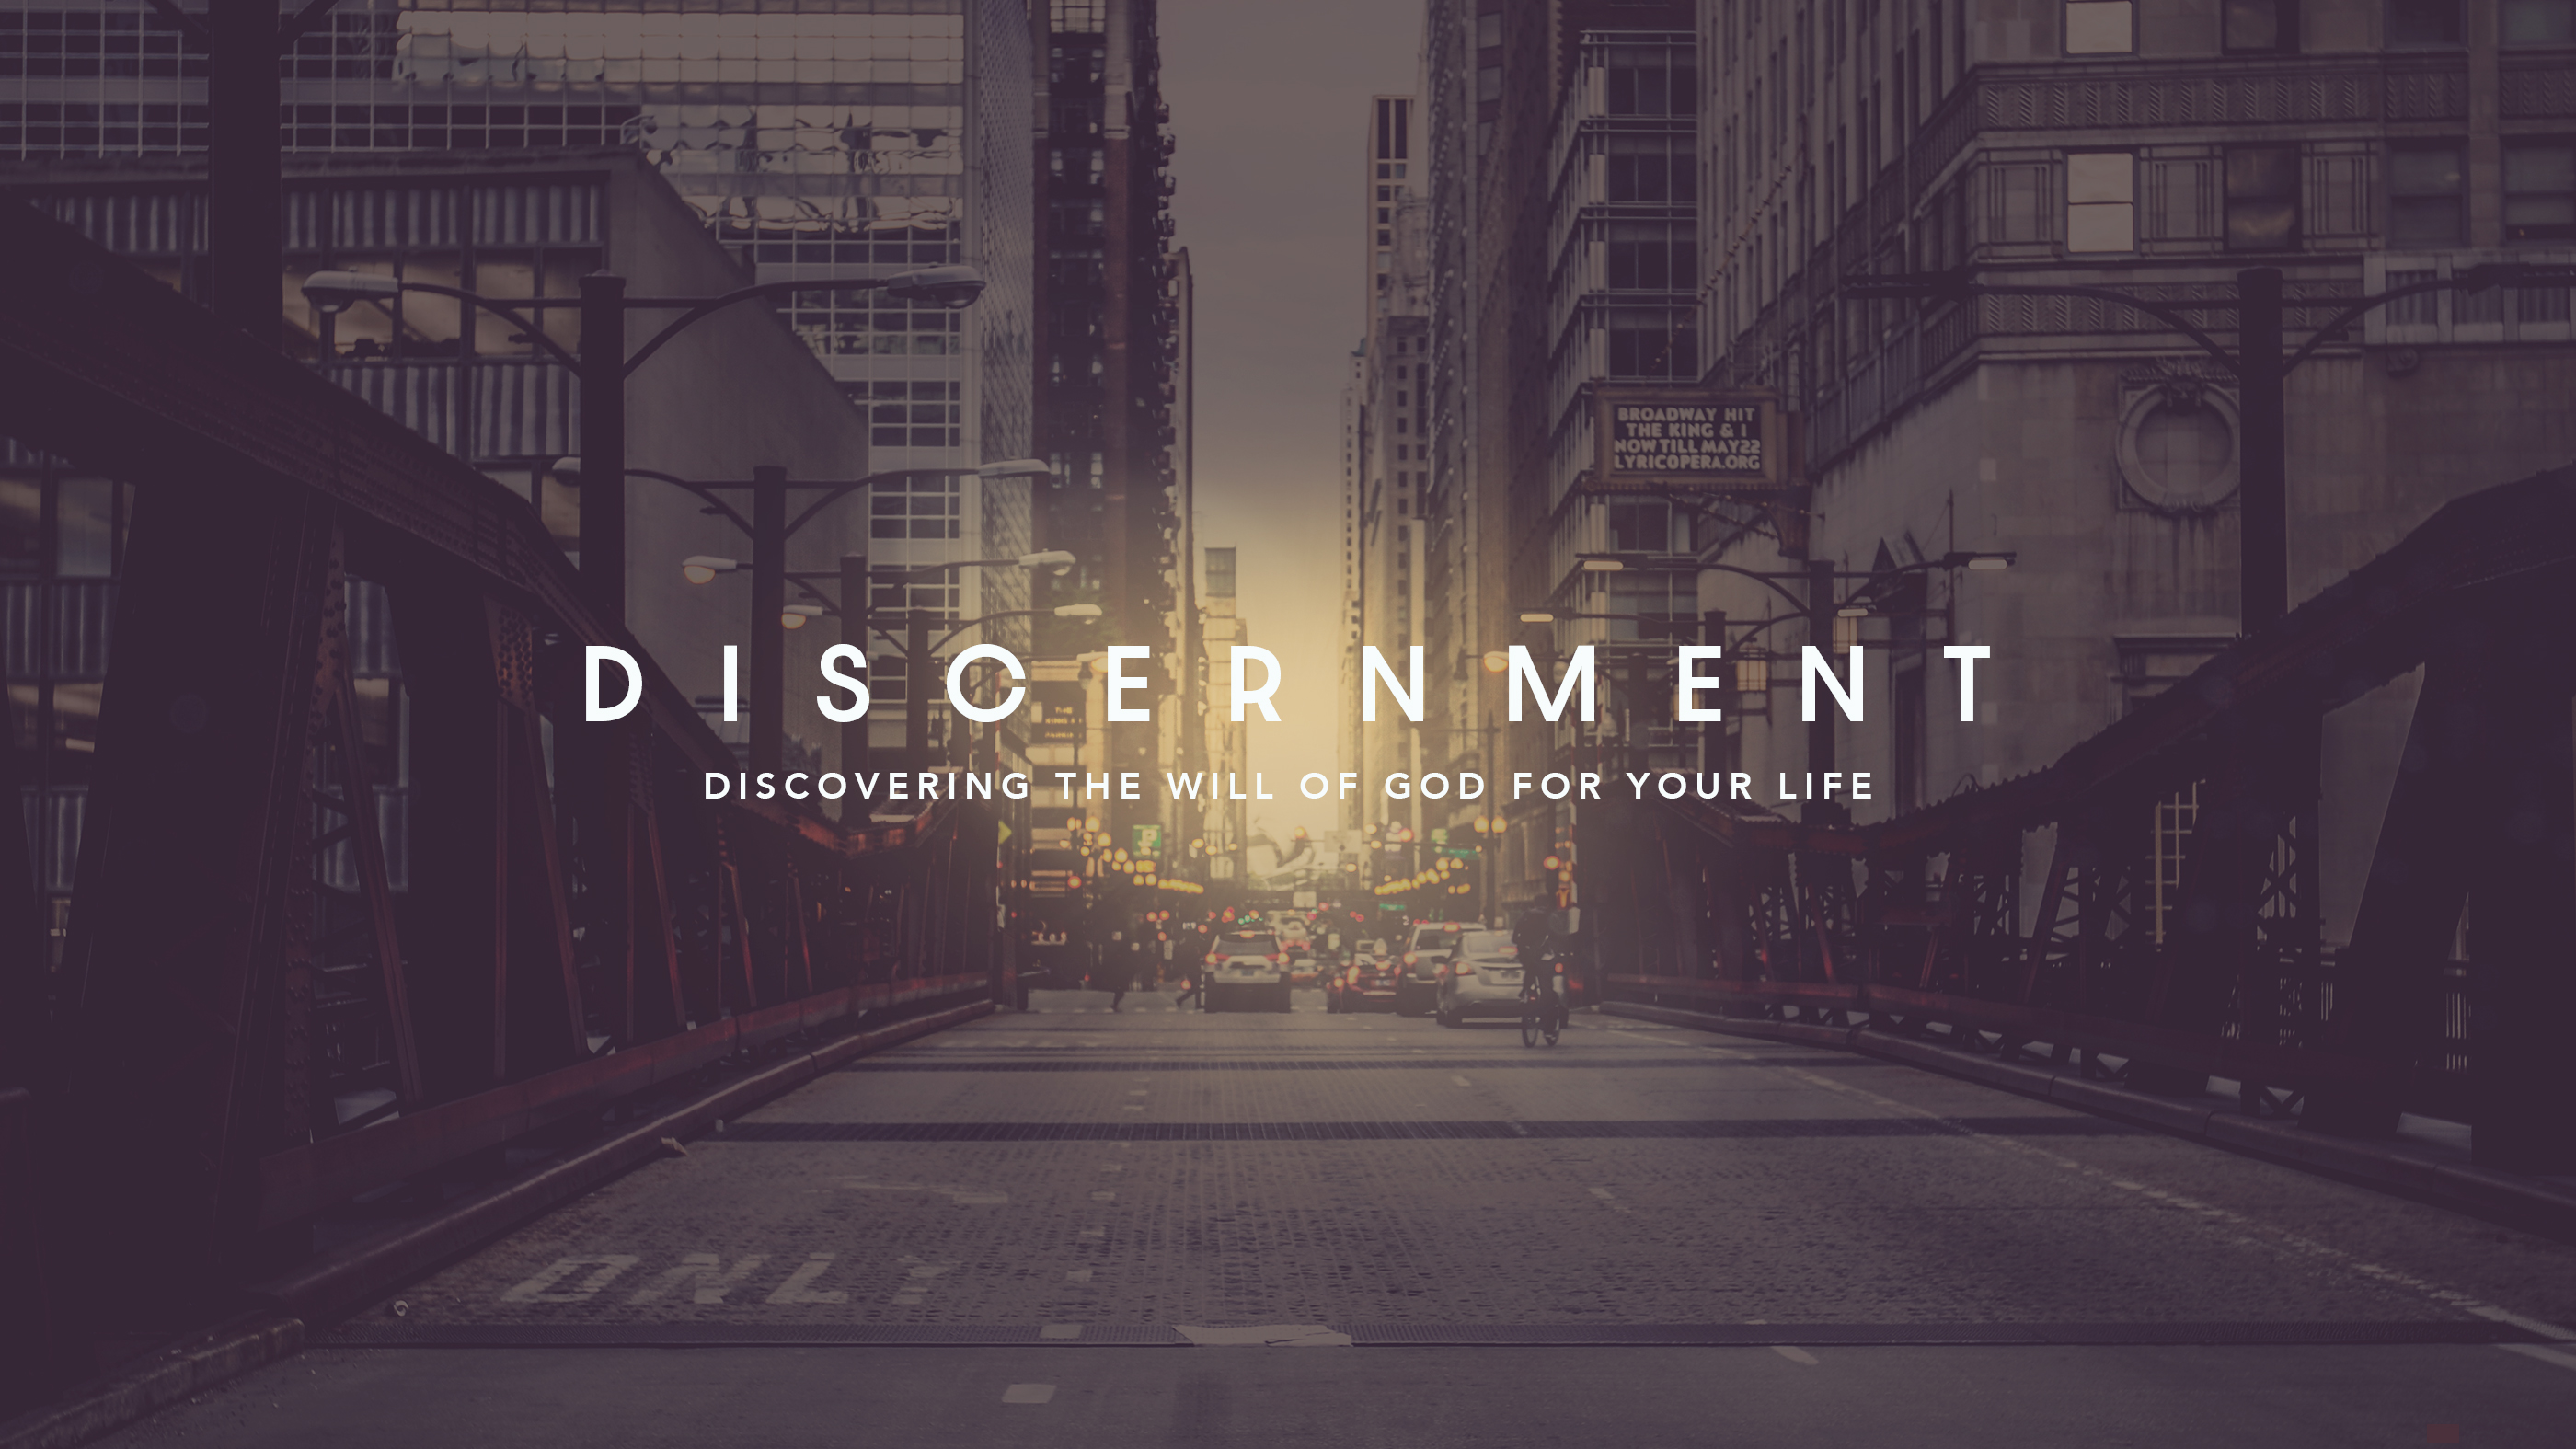 Discovering God's Will For Your Life Image